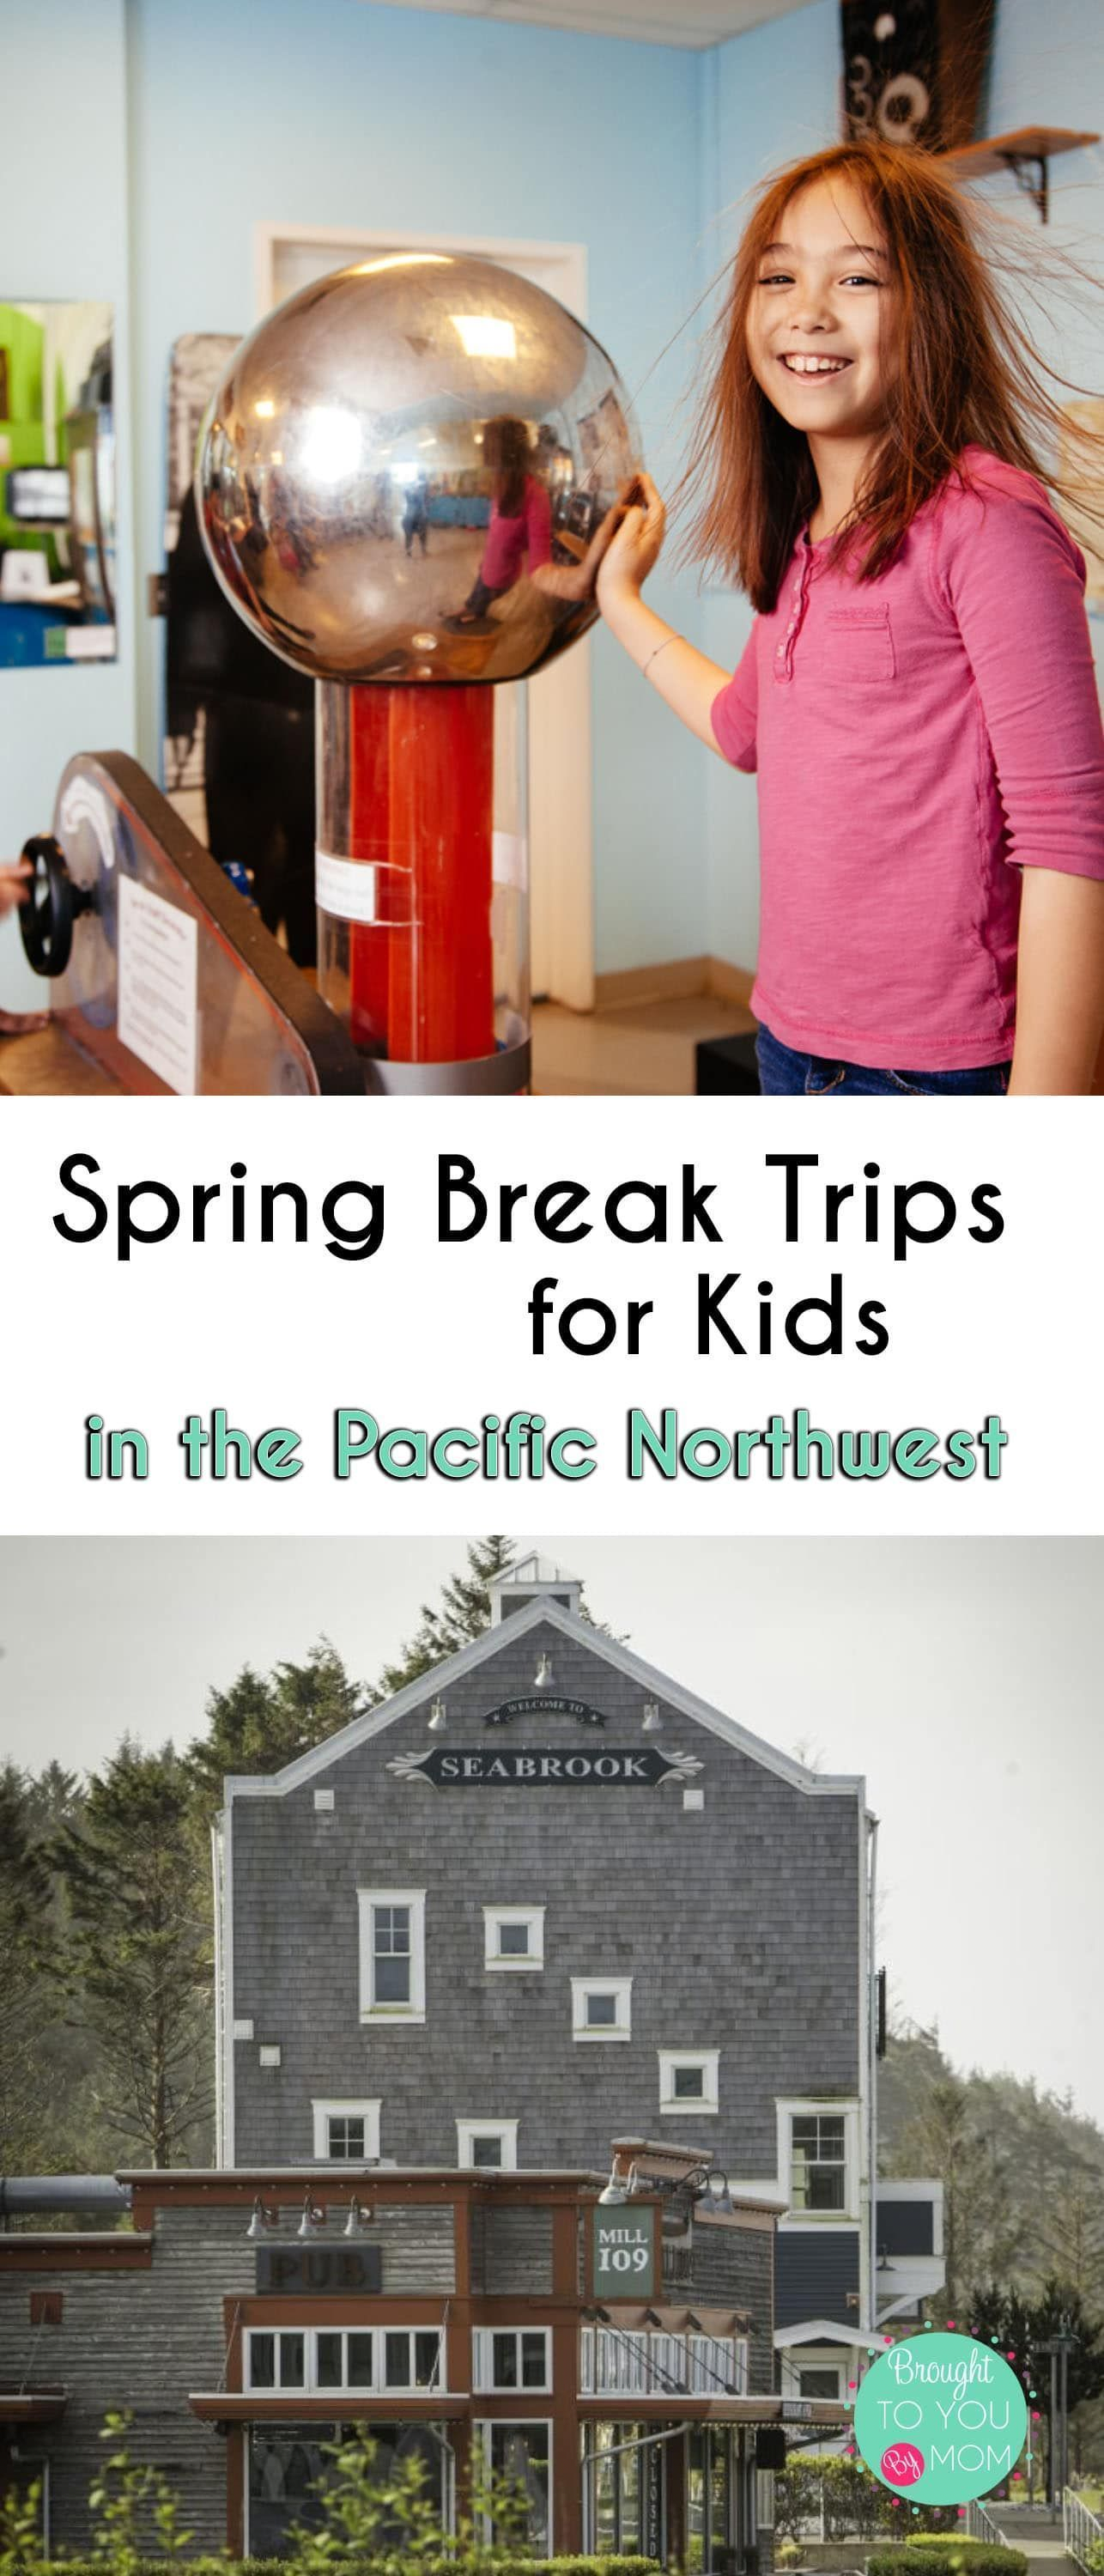 Spring Trips for Kids in the Pacific Northwest - Spring Trips for K ..., #kids #Northwest #Pacific #spring #springvacationdestinations #springvacationeurope #springvacationideas #springvacationintheus #springvacationnails #springvacationoutfits #springvacationpacking #springvacationpictures #springvacationquotes #trips